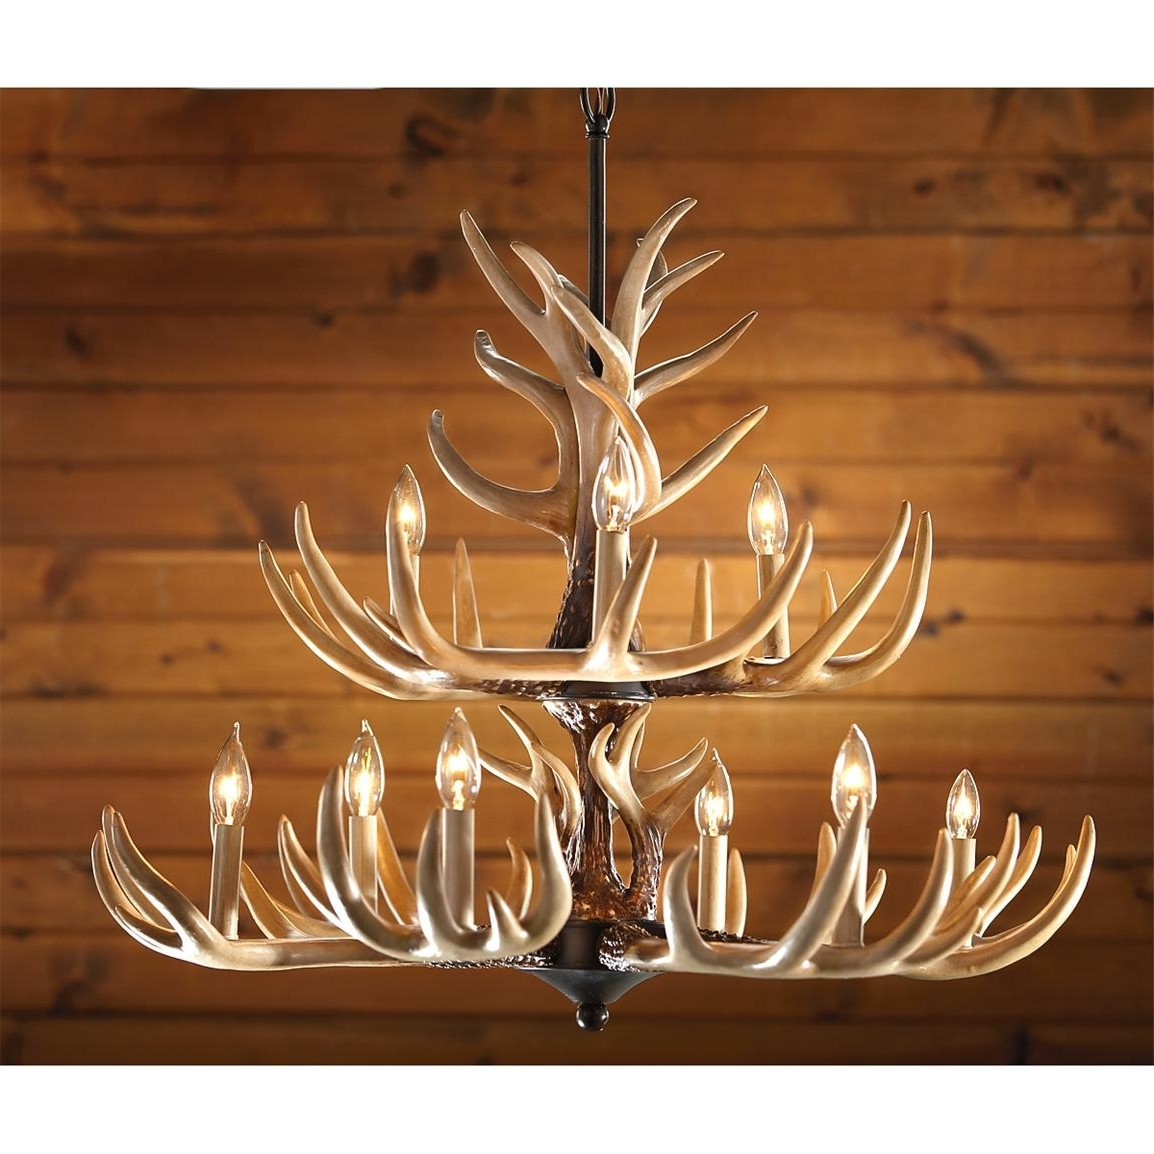 Well Liked Castlecreek 9 Light Whitetail Antler Chandelier – 226093, Lighting In Antler Chandeliers (View 19 of 20)